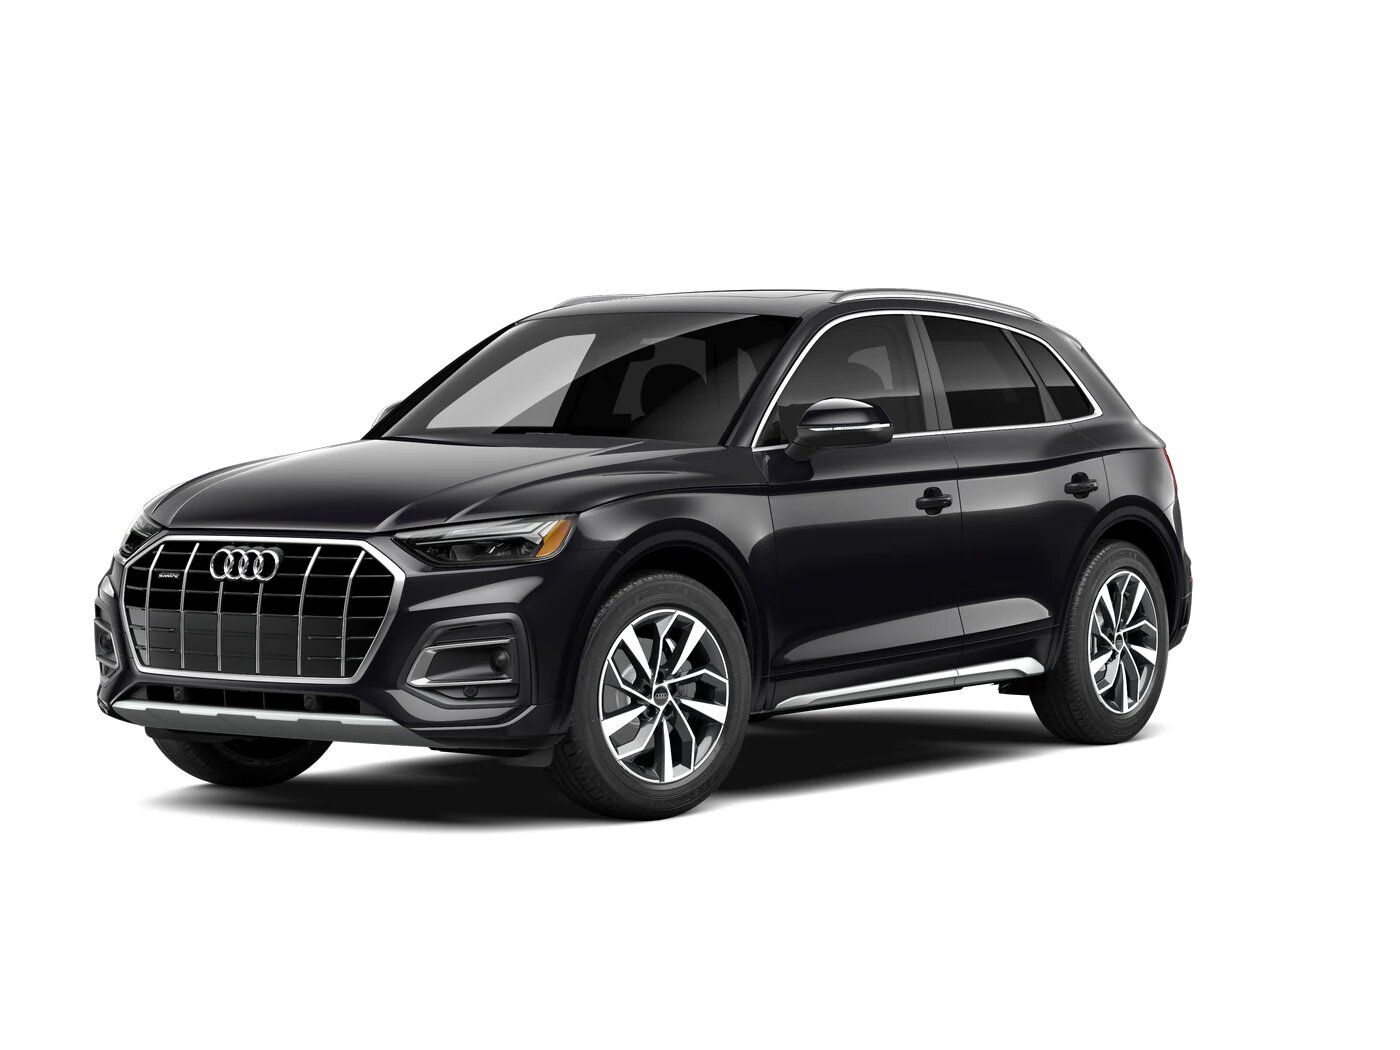 Finance Your Next Audi Vehicle at Thelen Audi in Bay City, Michigan